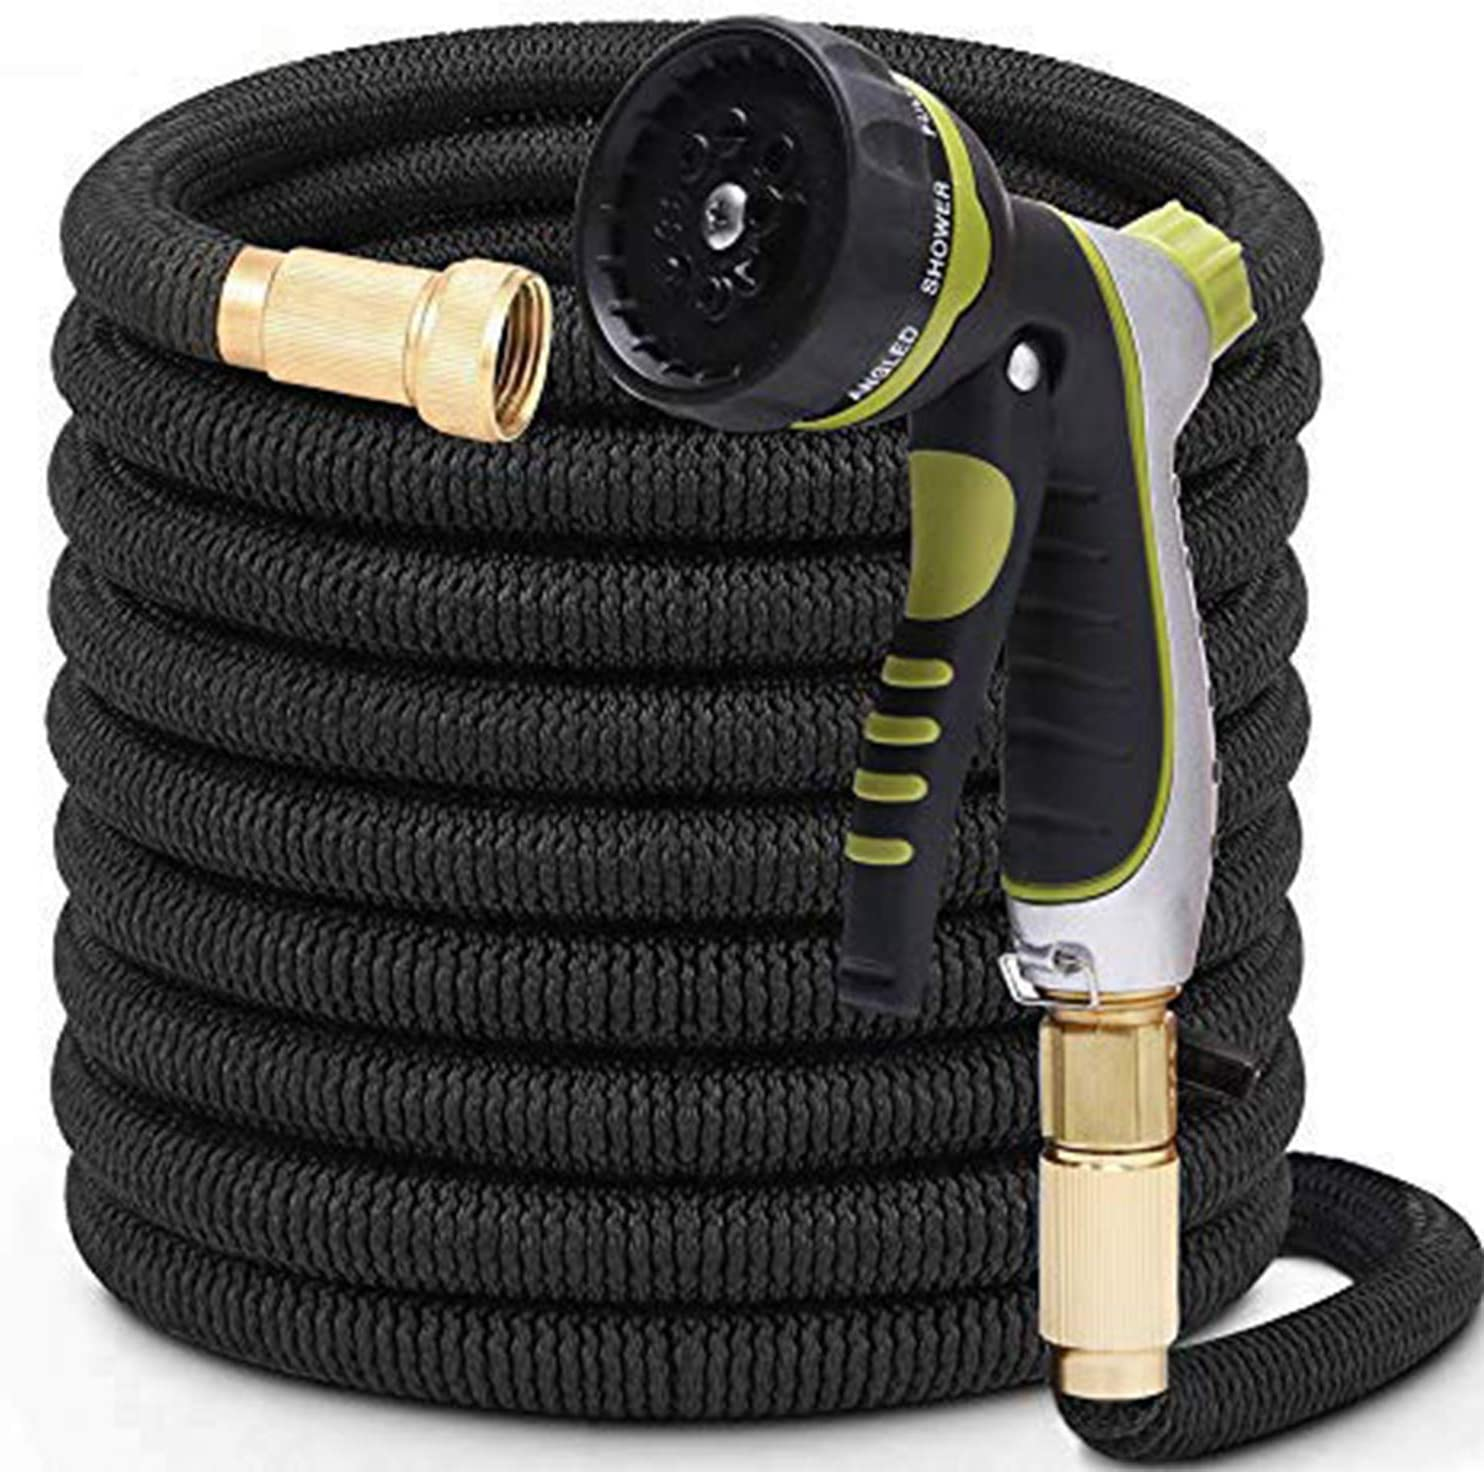 PLSDOIT 25FT Expandable Garden Hose with 8 Function Nozzle No Kink Flexible bility Extra Strength with 3/4 Inch Solid Brass Fittings & Double Latex Core Rot Crack Leak Resistant Soaker Hose